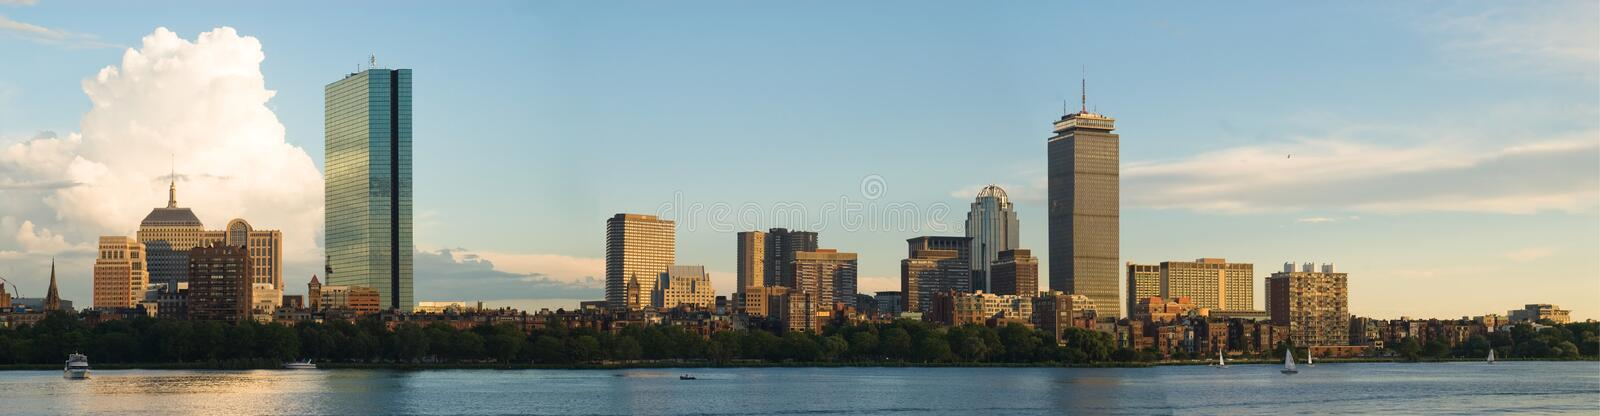 Boston Back Bay panorama royalty free stock images